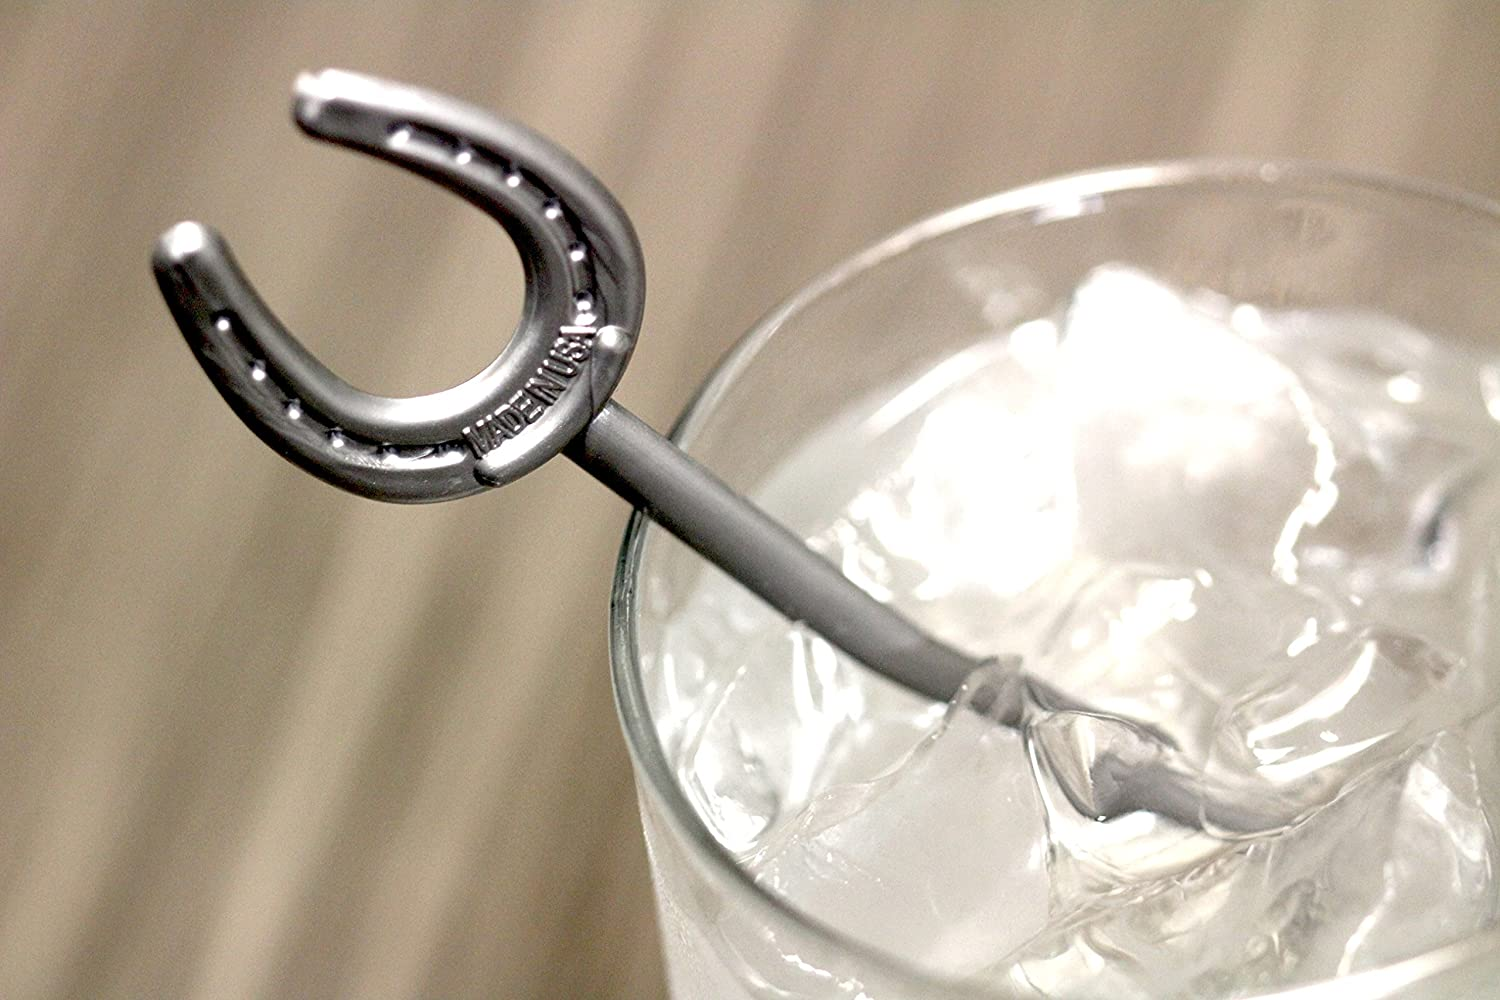 Royer 6 Plastic Horseshoe Derby Party Swizzle Sticks Made in USA Pearl Silver Set of 24